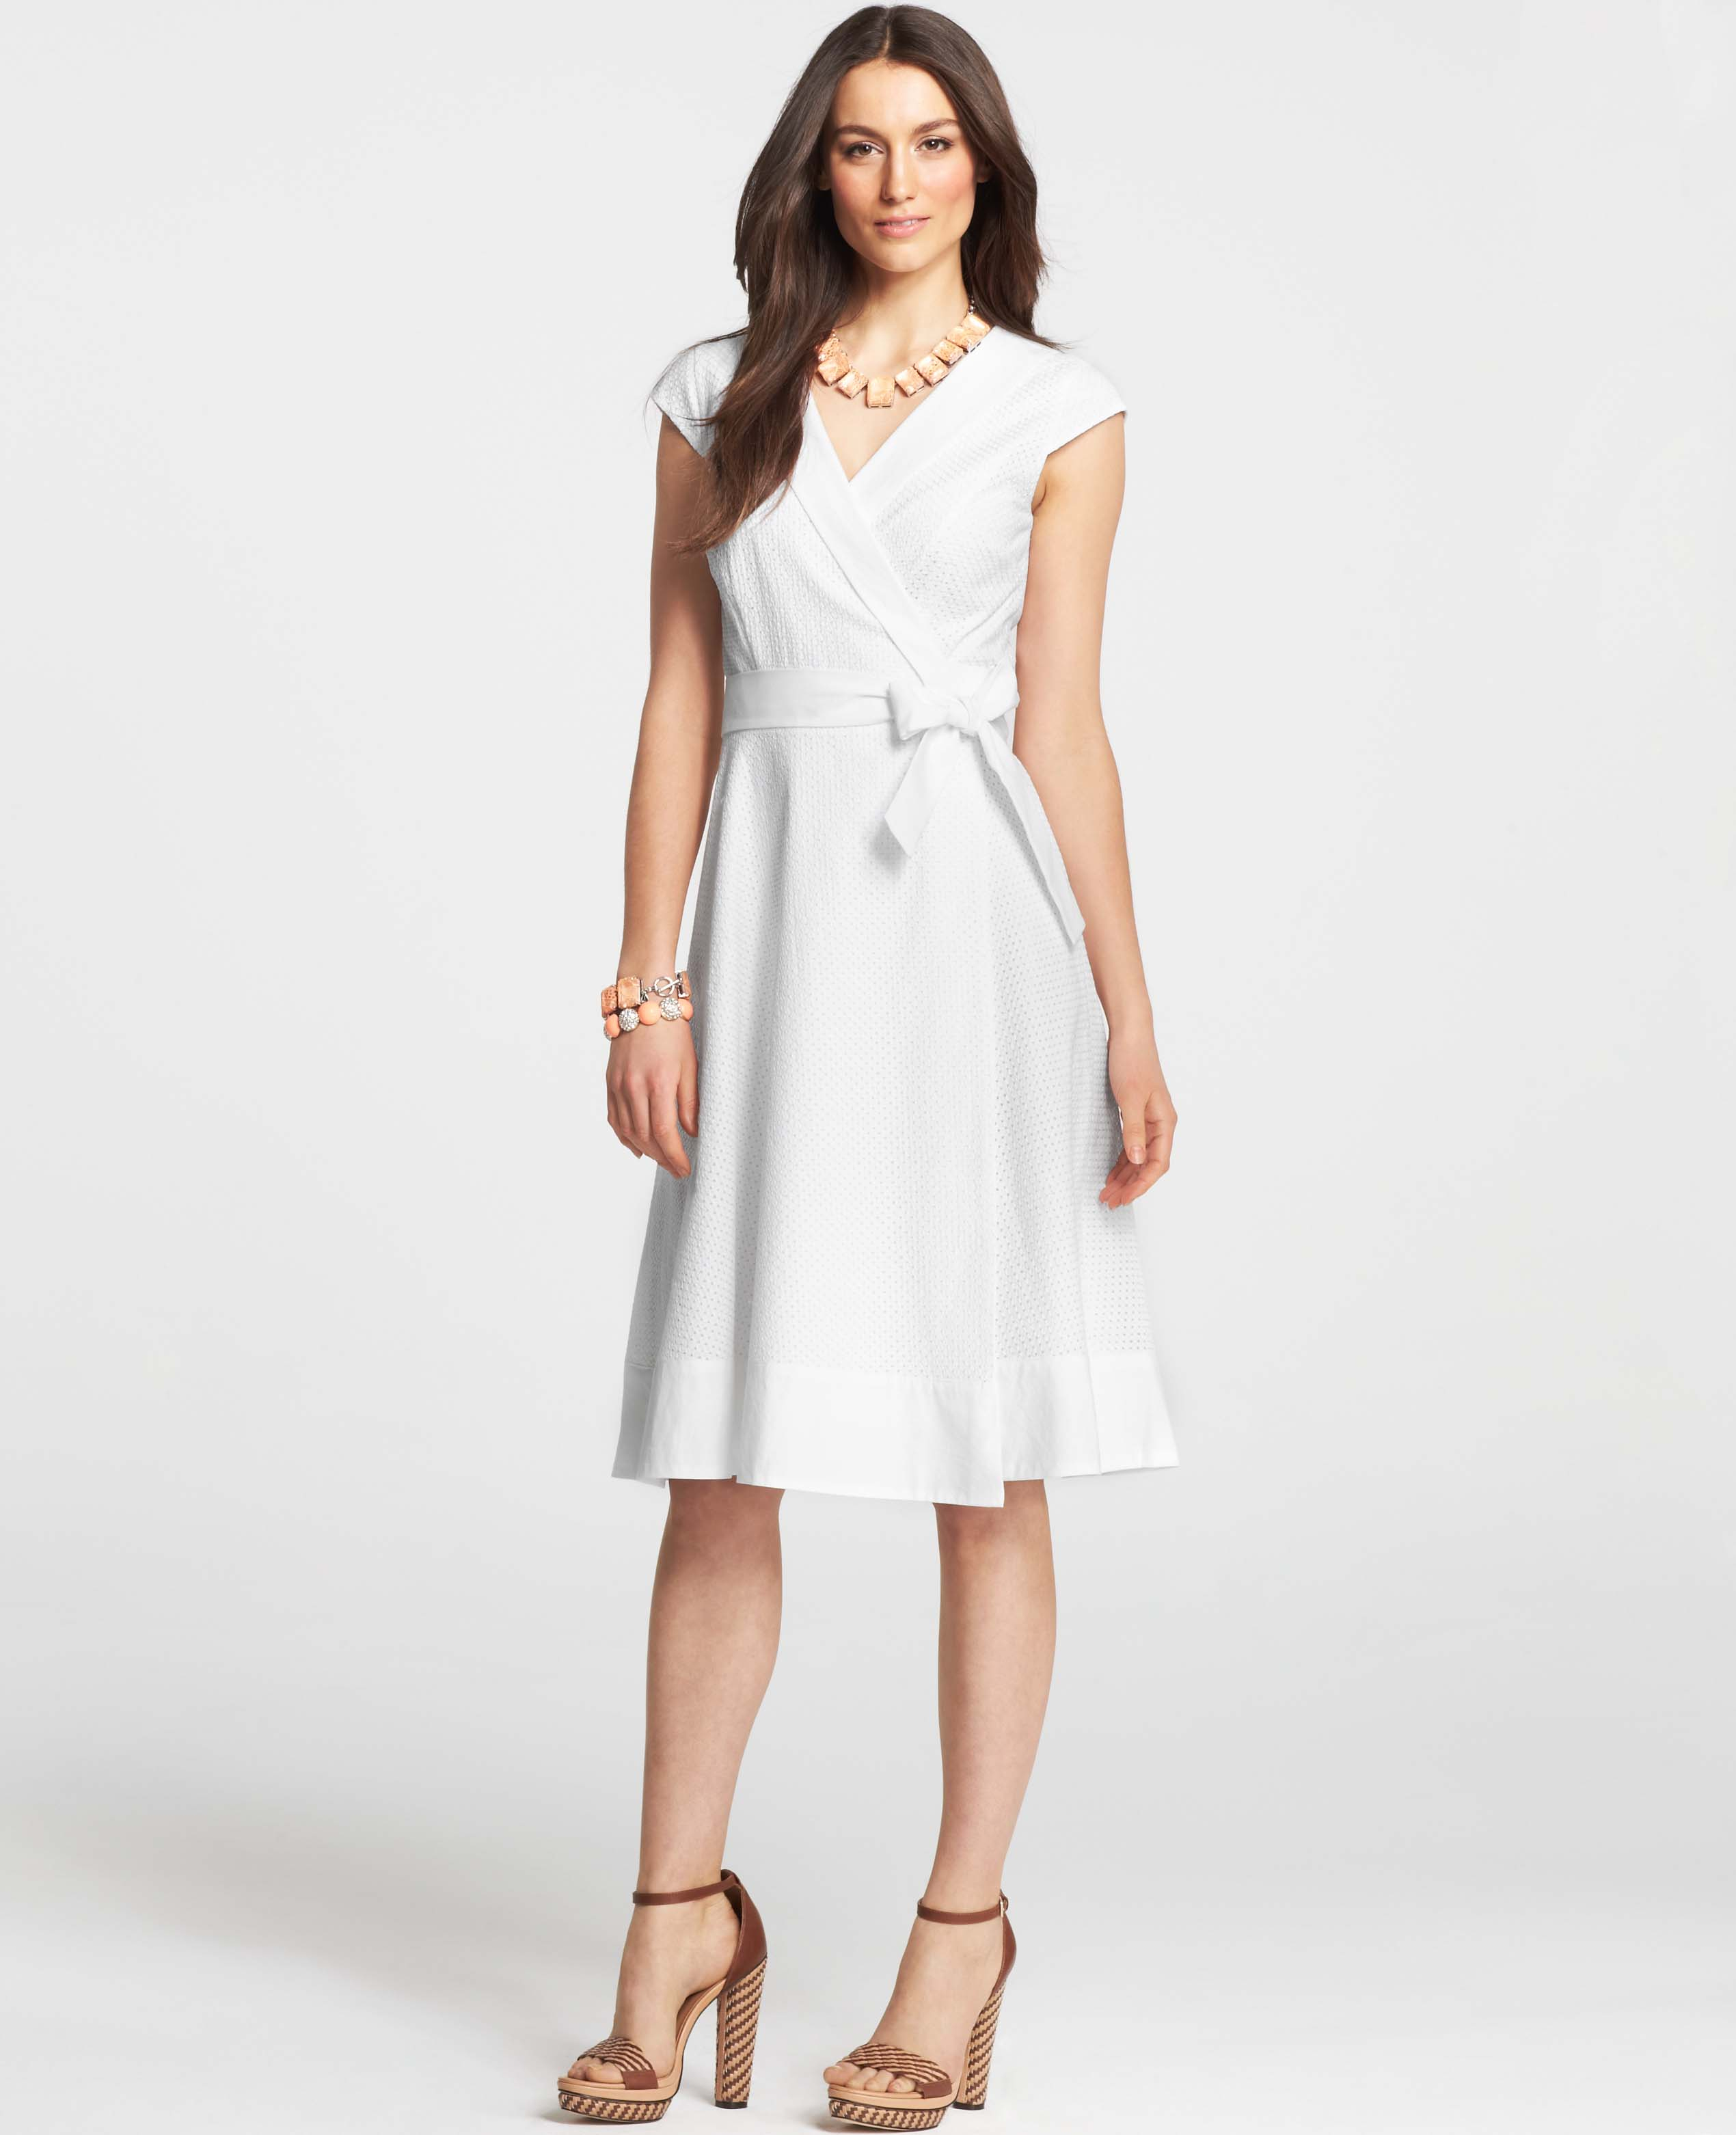 Ann taylor Petite Cotton Eyelet Wrap Dress in White | Lyst